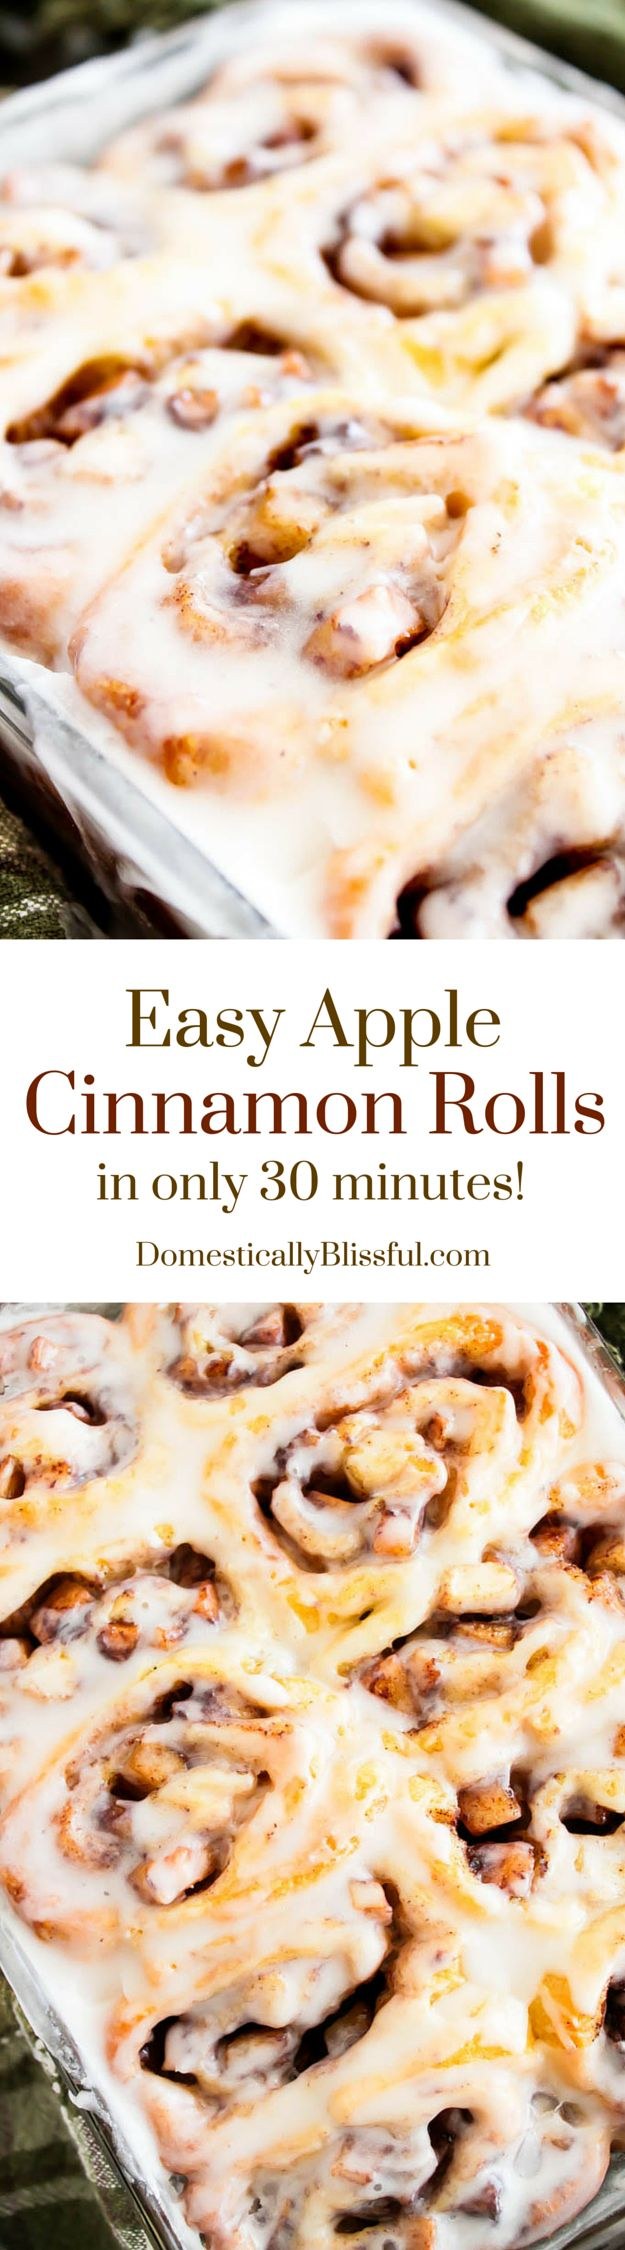 Easy Apple Cinnamon Rolls are a delicious fall treat that only need 30 minutes to make!